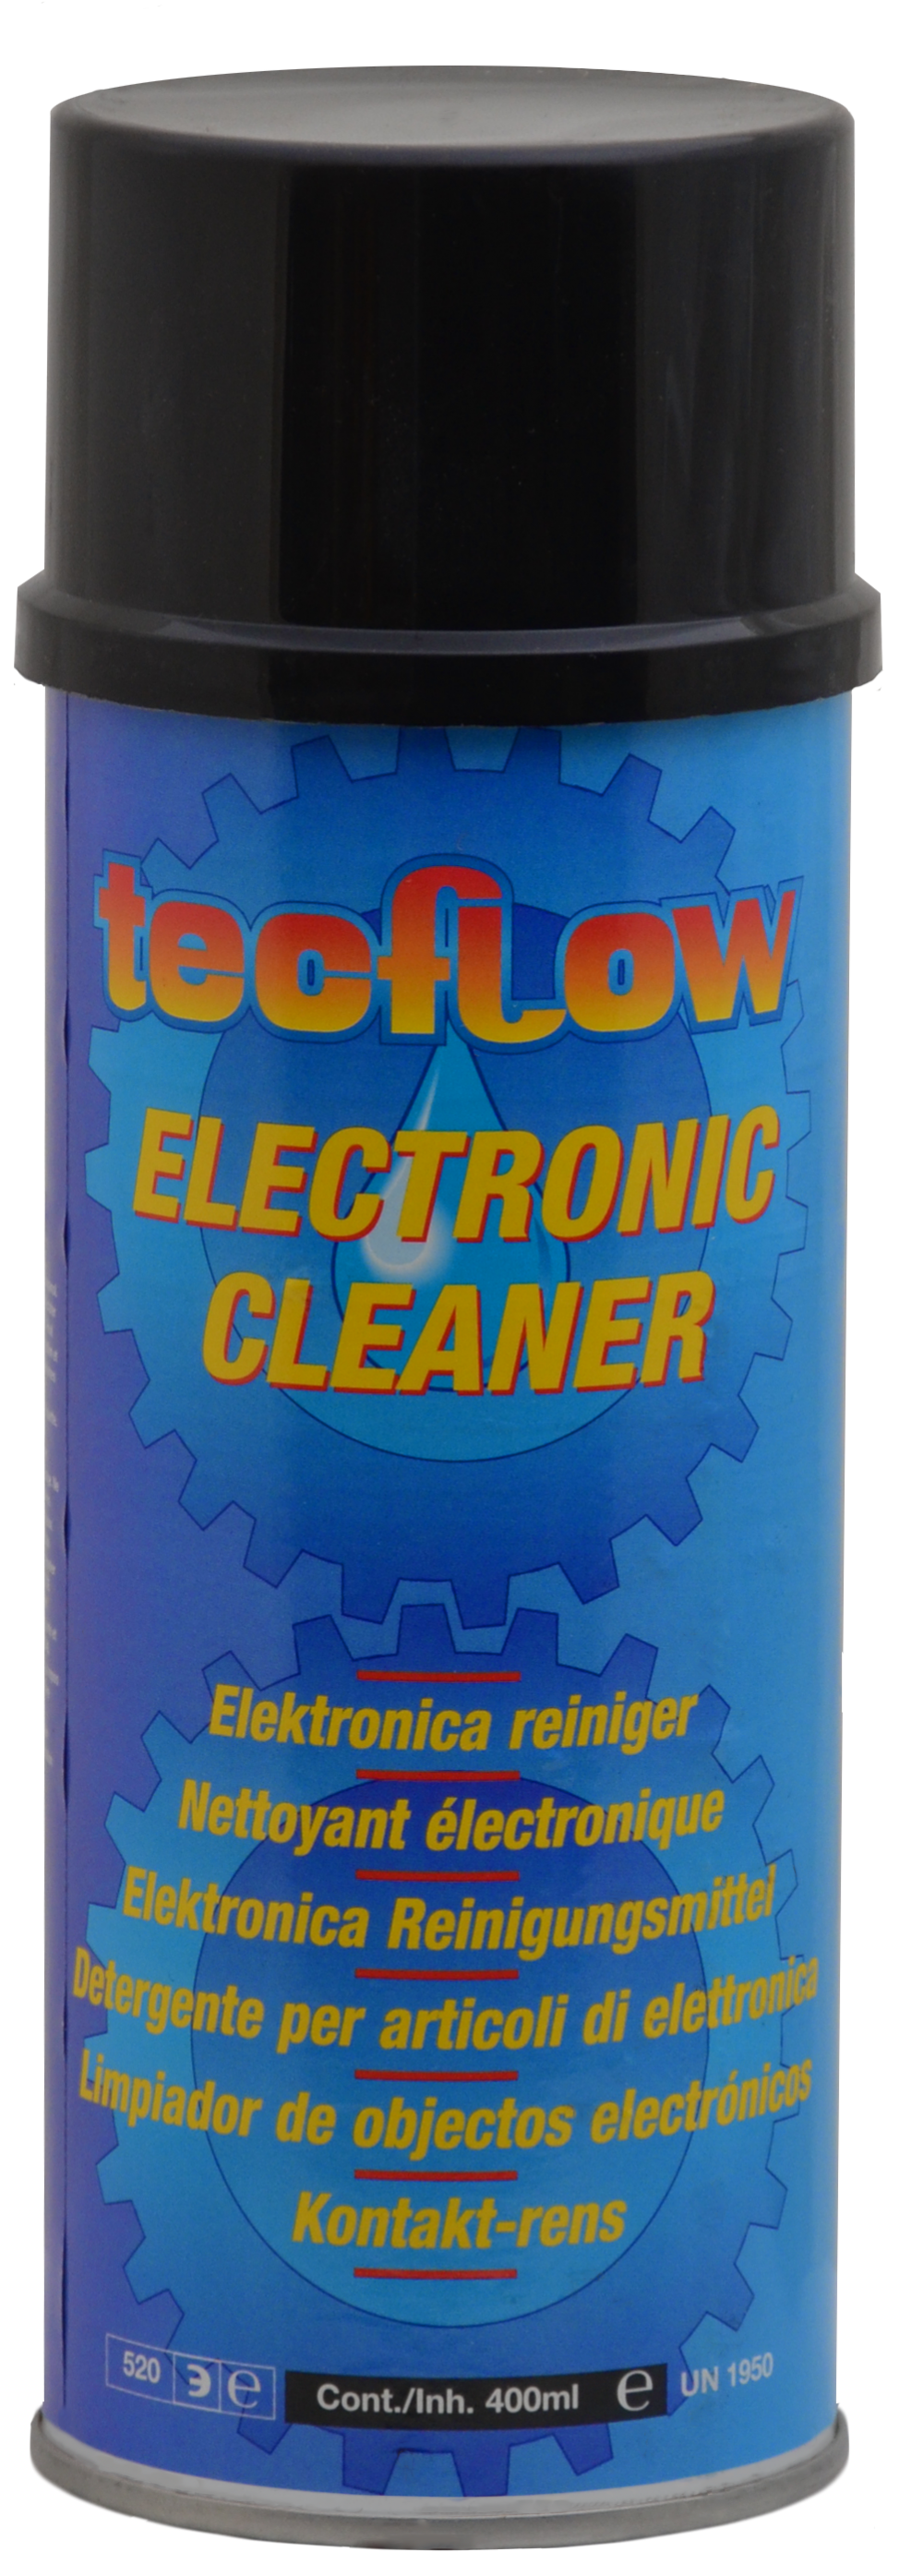 Electronic Cleaner Spray For Cleaning Contact Points Tecflow 1966